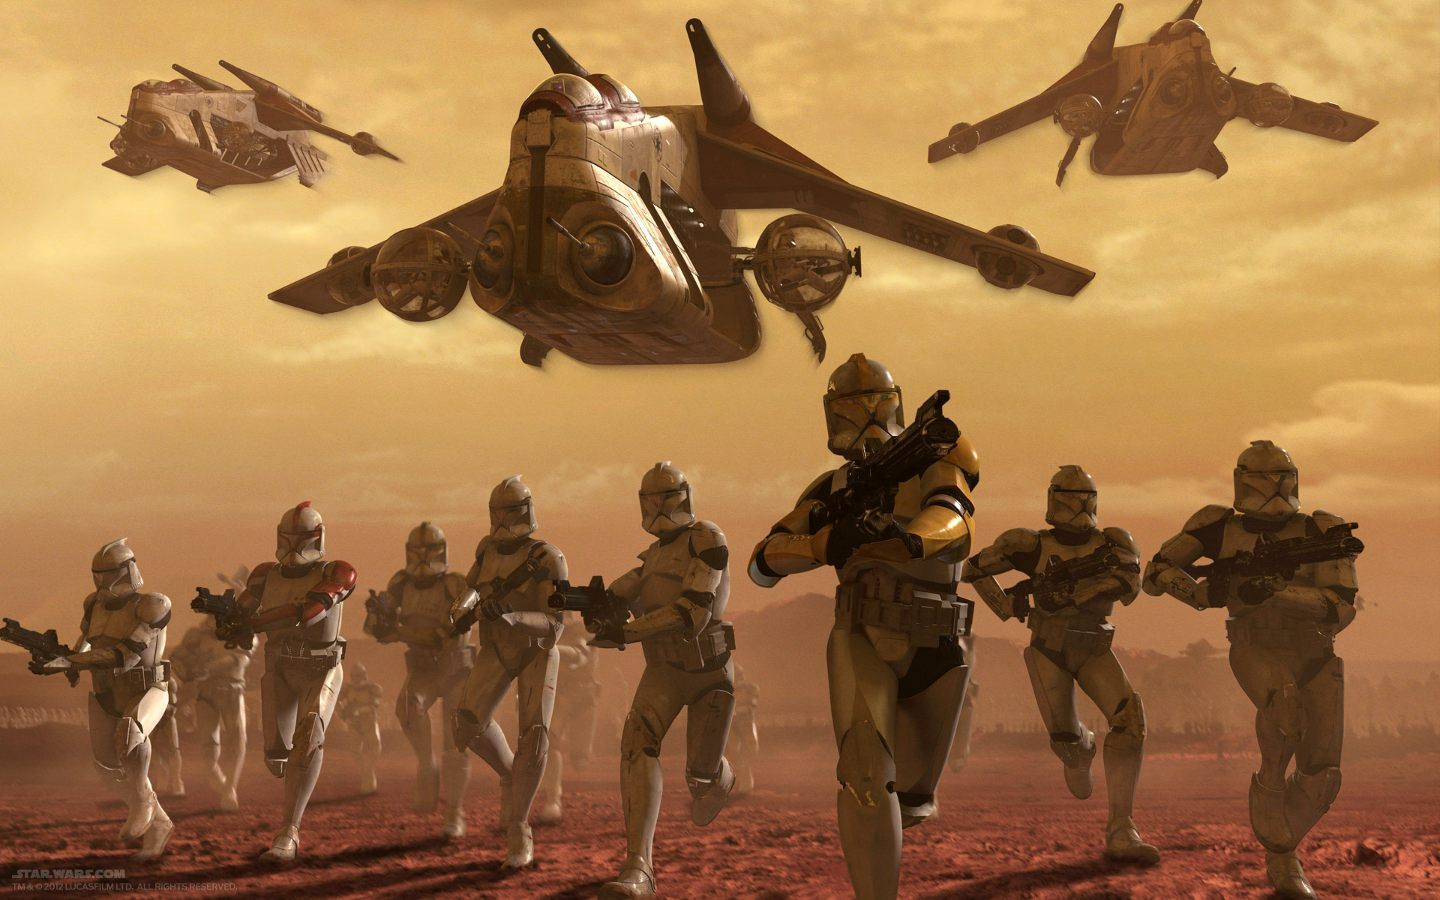 Battle on Geonosis.